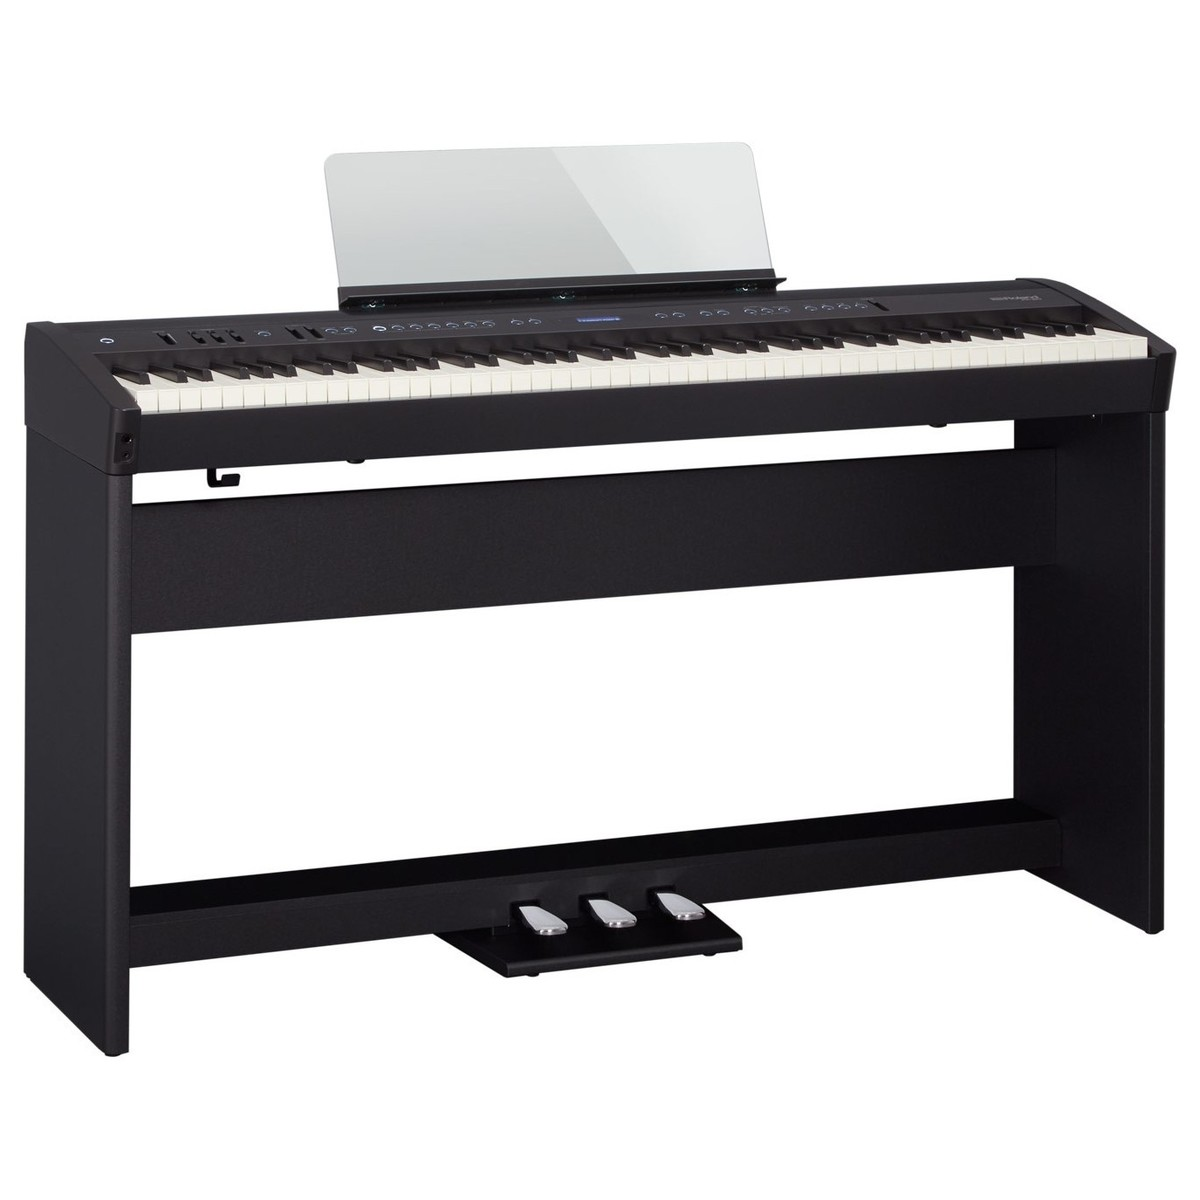 roland fp 60 digital piano with stand and pedals black at gear4music. Black Bedroom Furniture Sets. Home Design Ideas